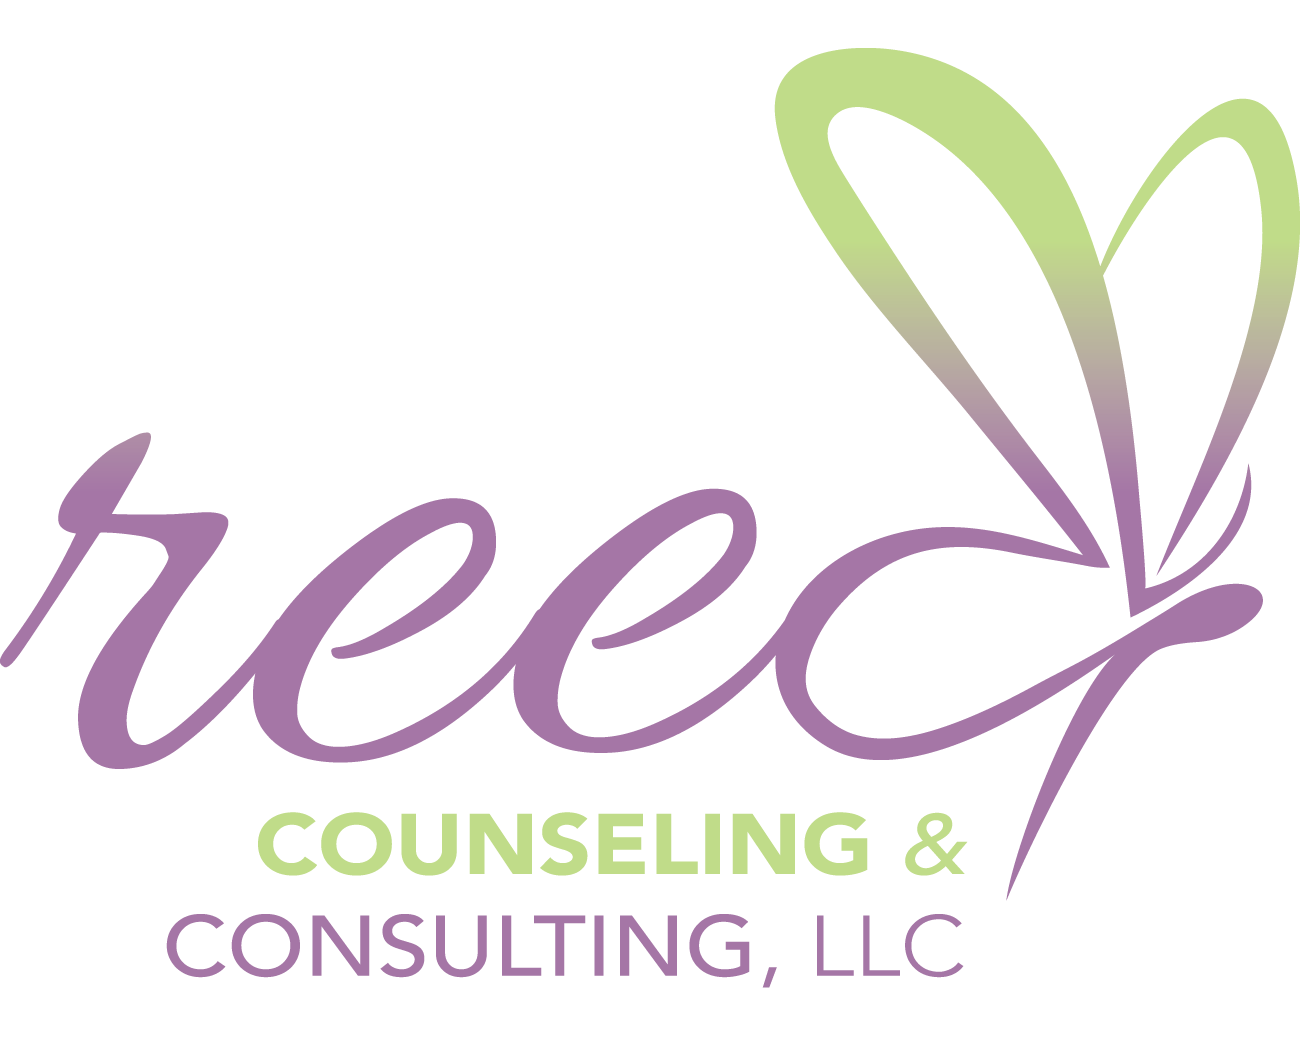 Reed Counseling And Consulting, LLC